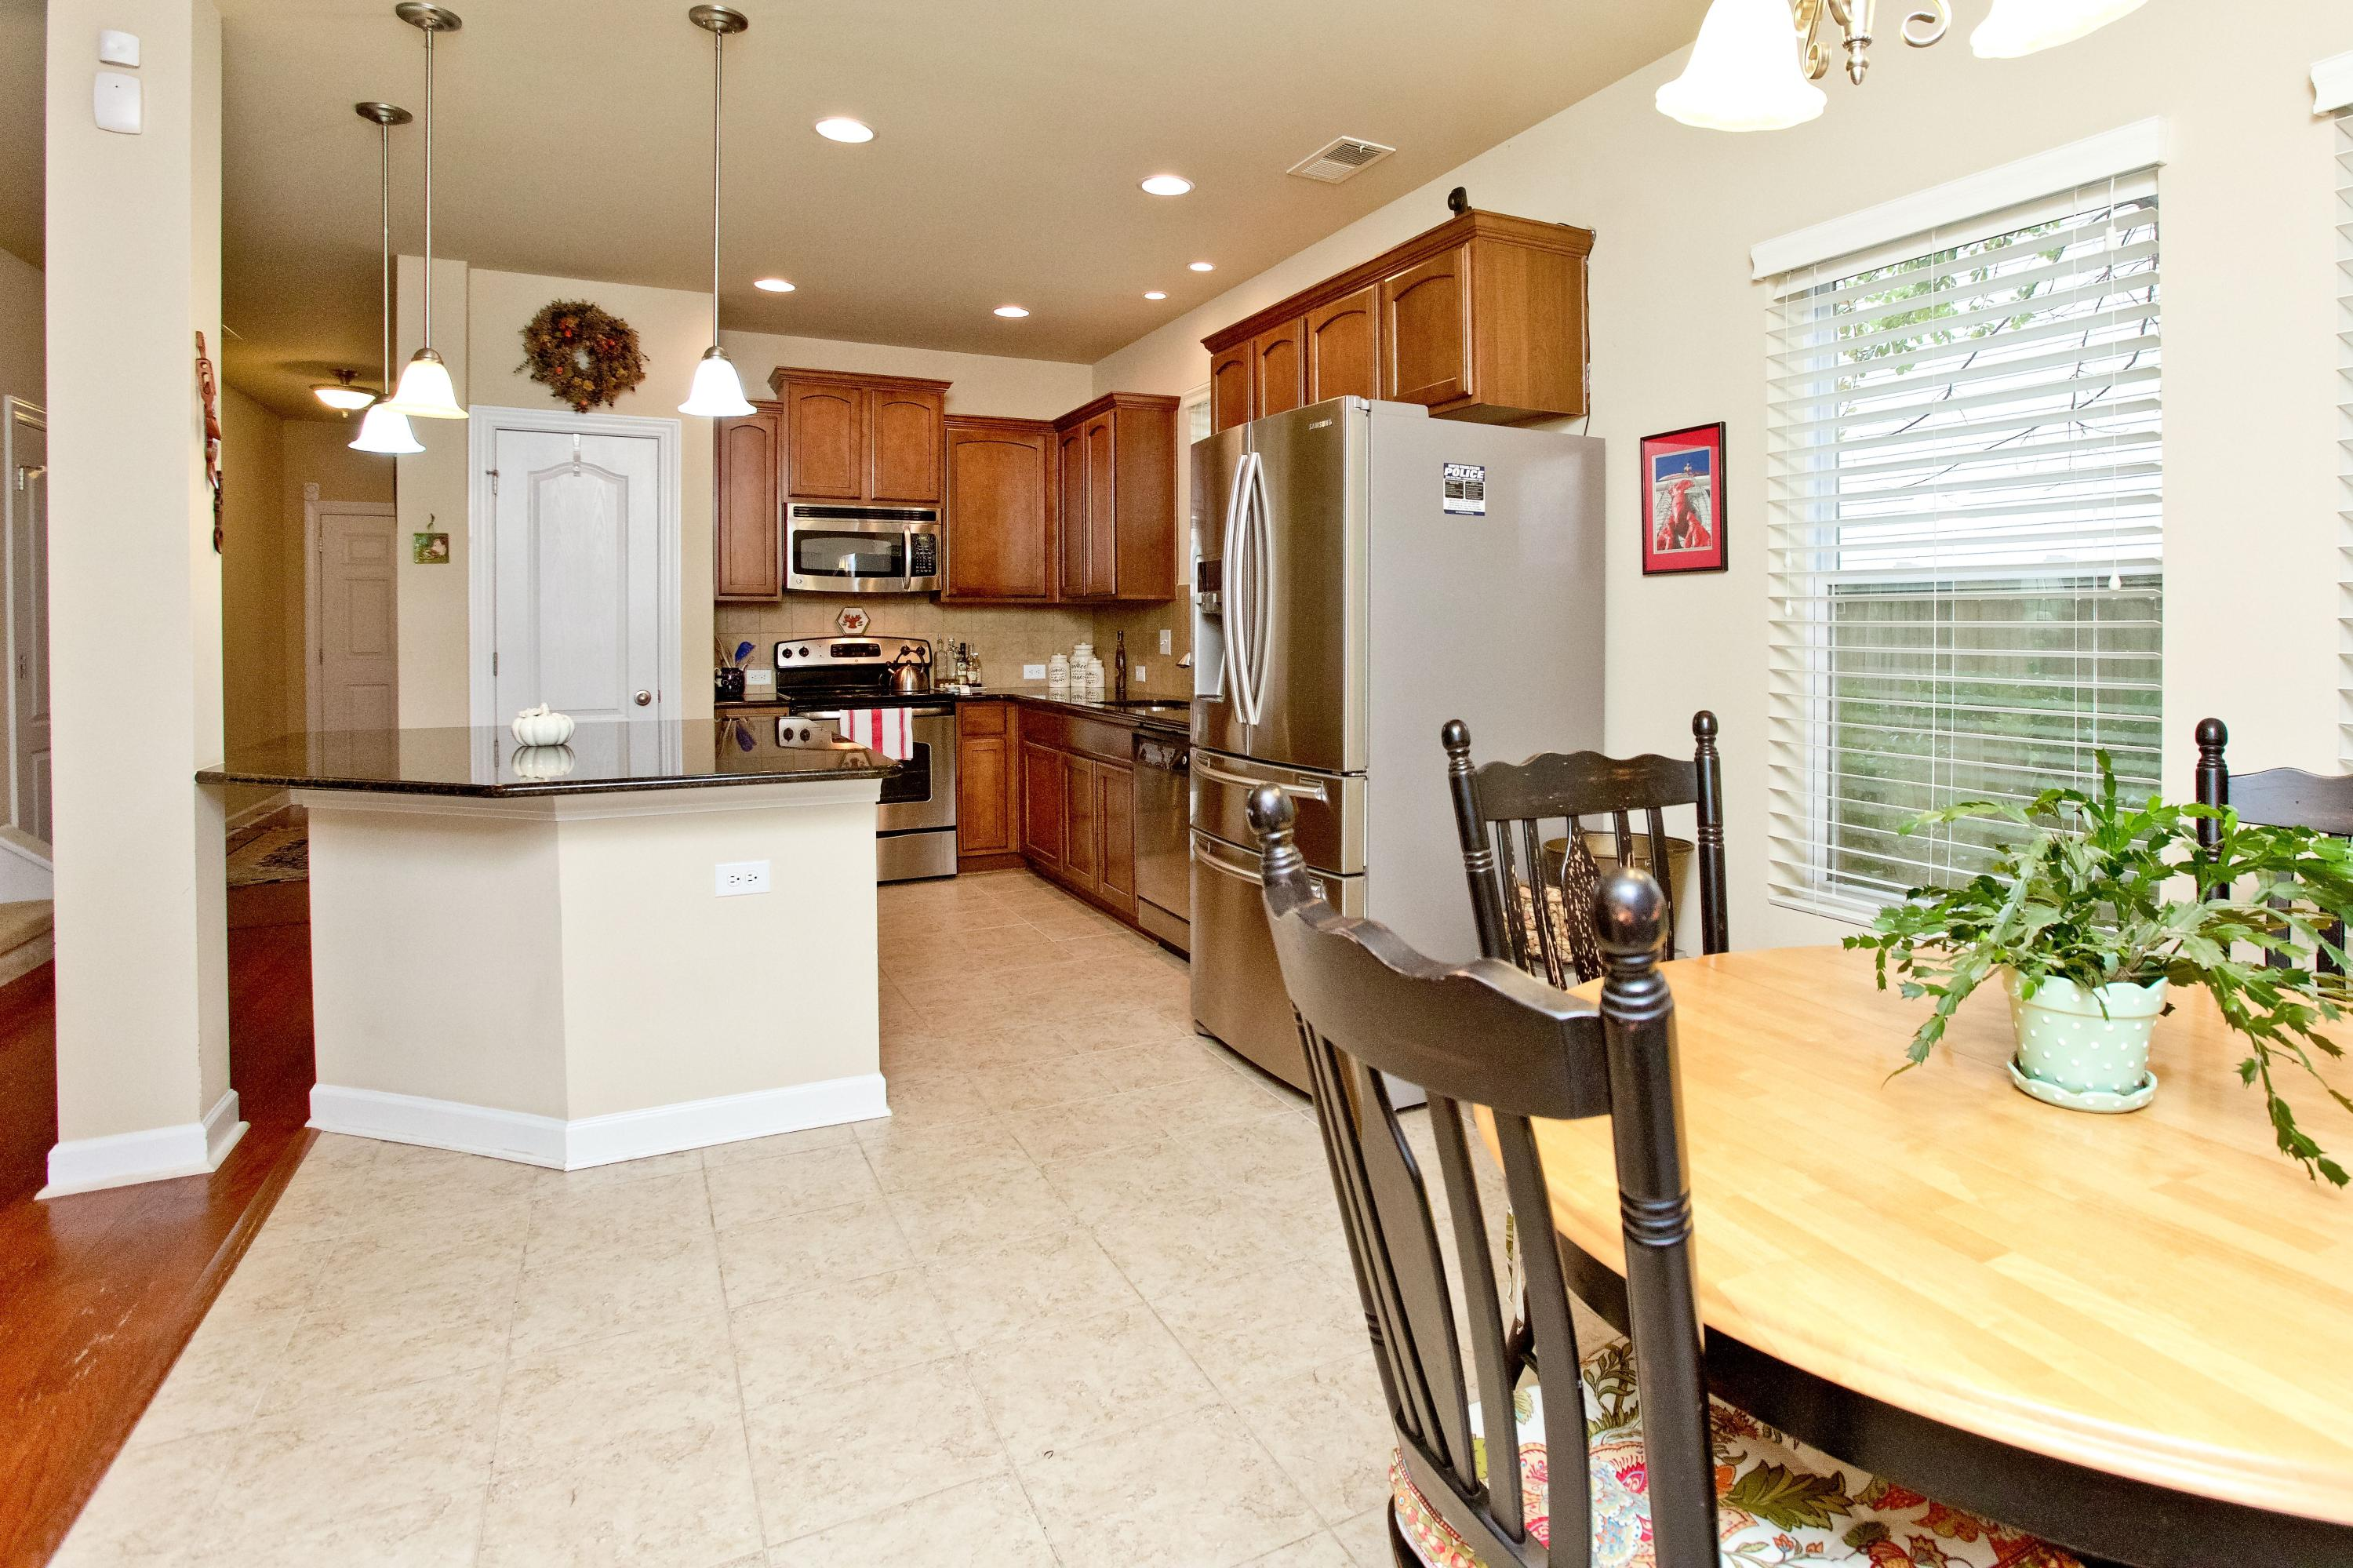 Appian Way Homes For Sale - 8473 Athens, North Charleston, SC - 10